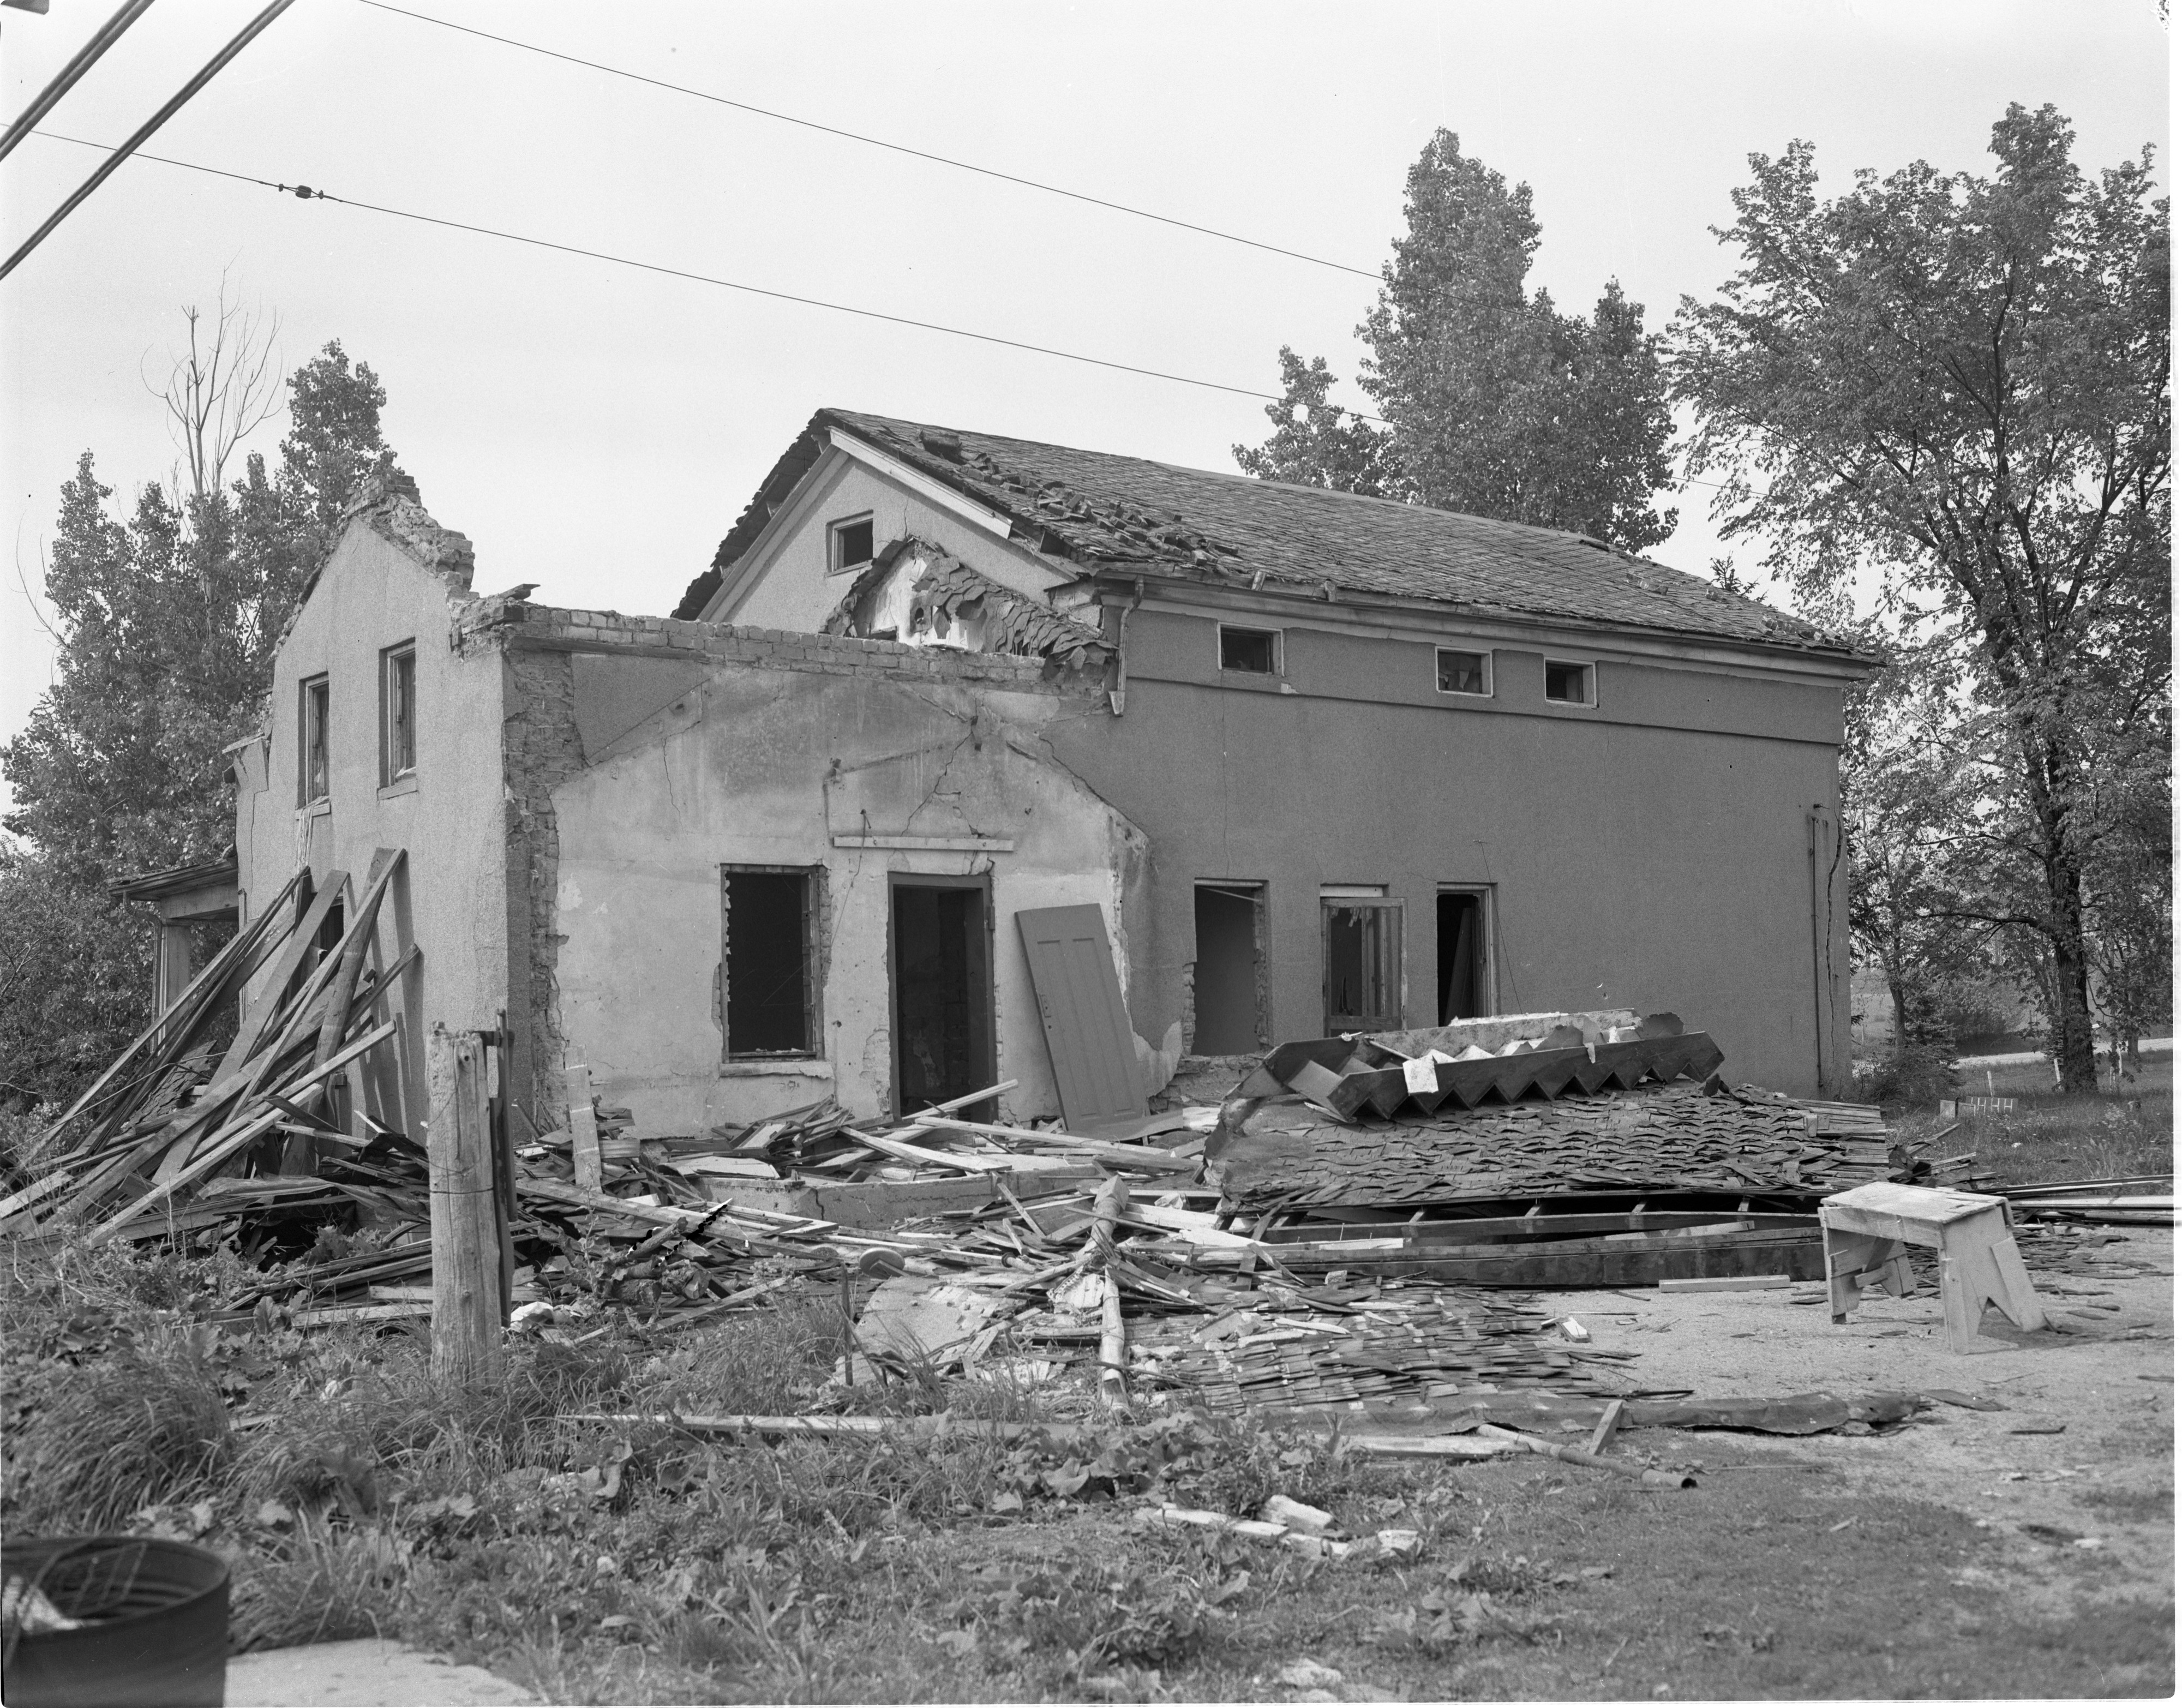 Greek-Revival Adobe Home At Scio Church Rd & Greenview Dr Is Torn Down, May 1955 image